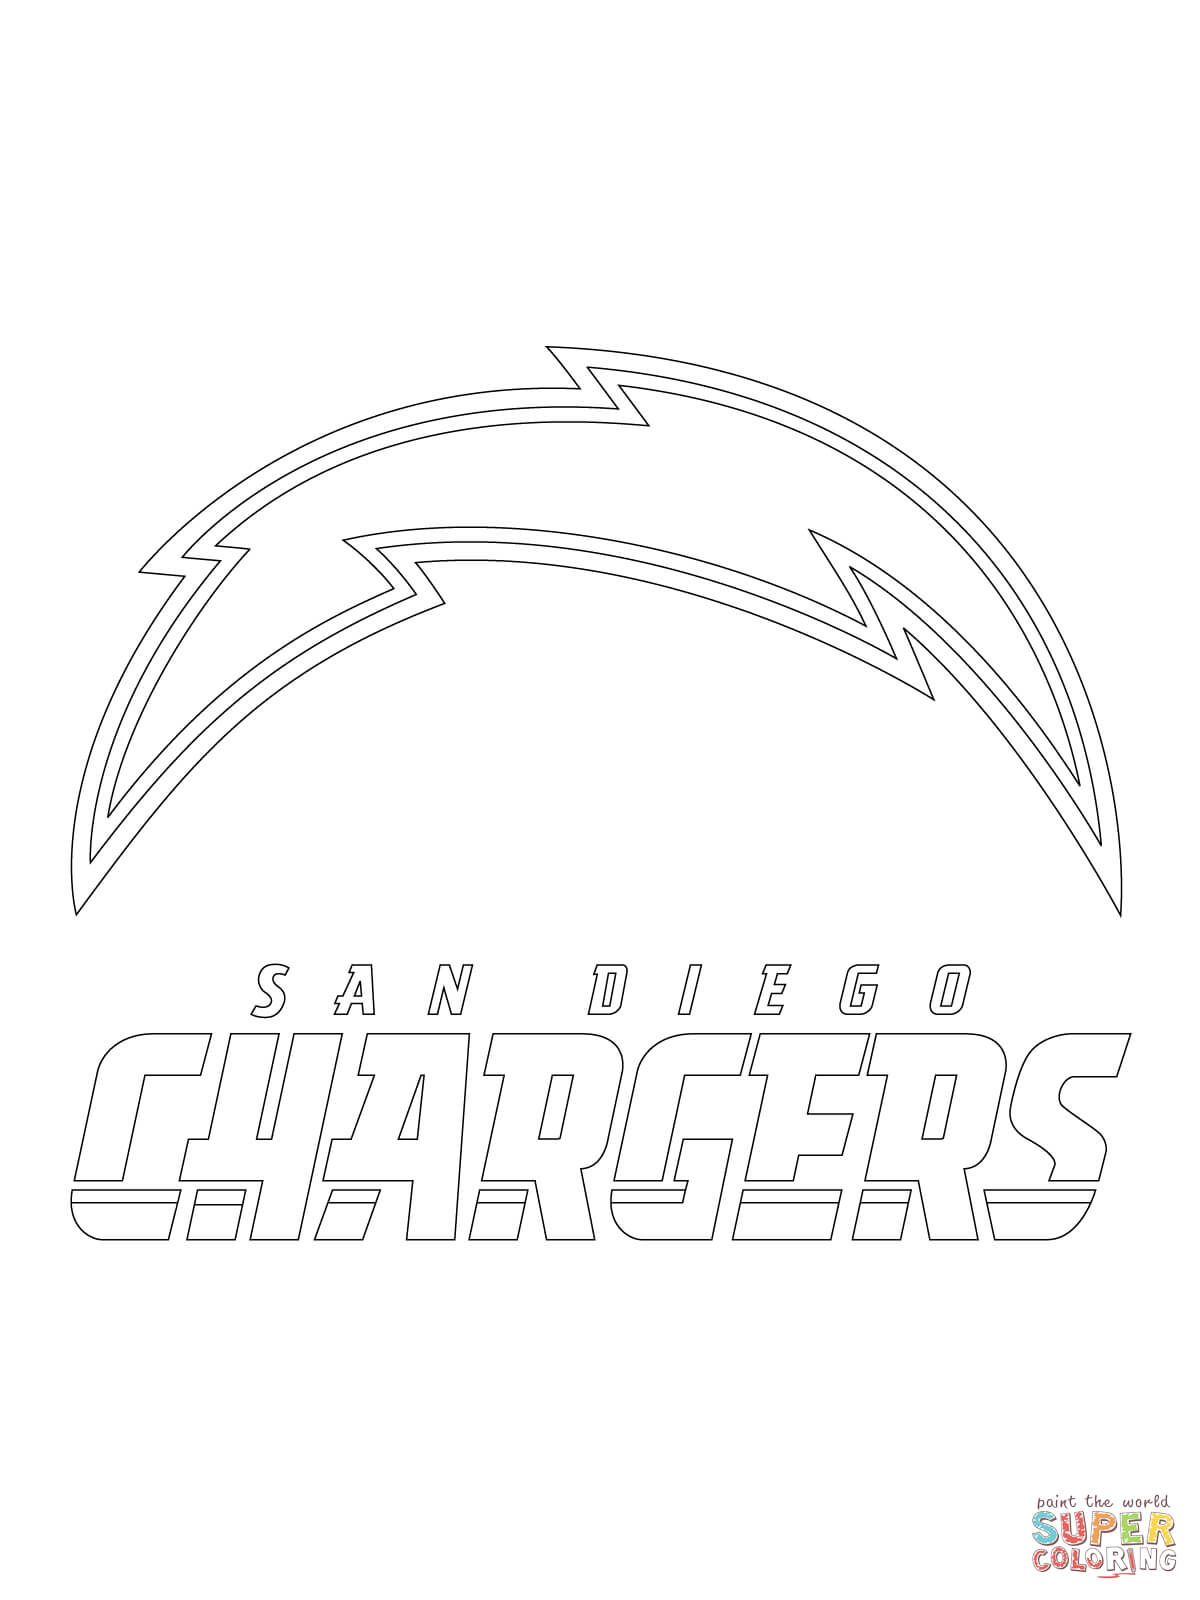 san diego chargers logo coloring page free printable coloring pages